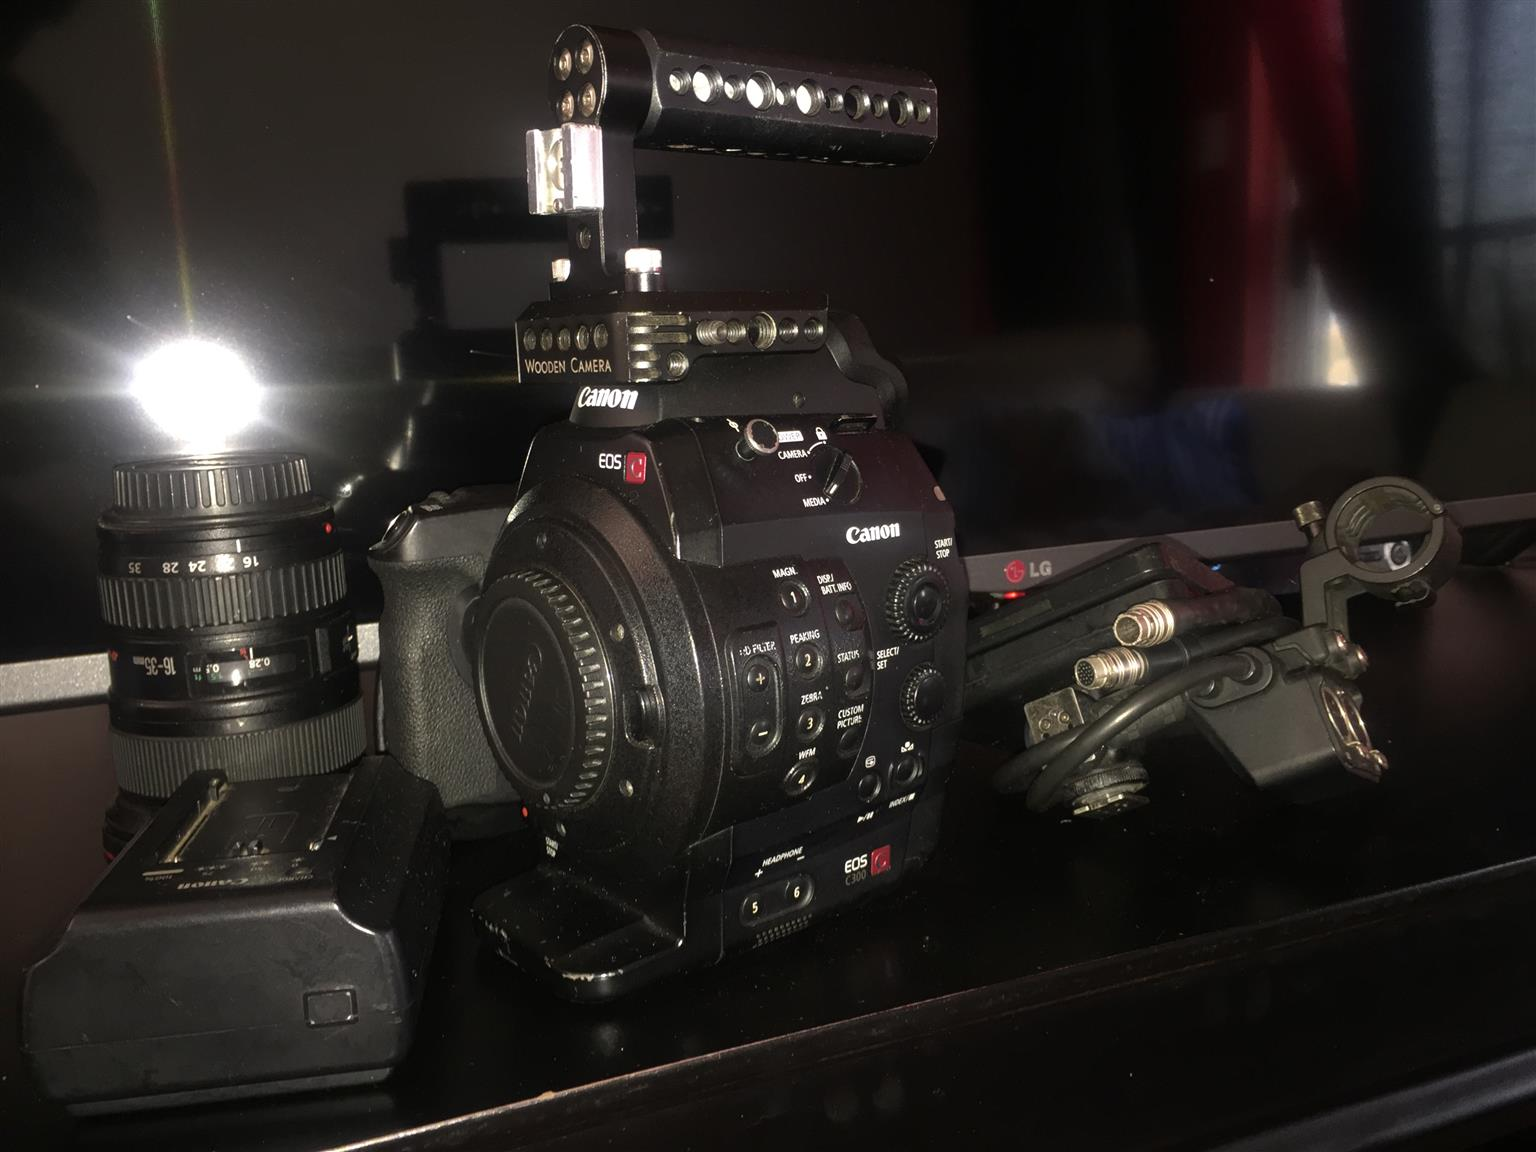 CANON C3OO EOS CINEMA CAMERA (IF YOU KNOW... YOU KNOW)